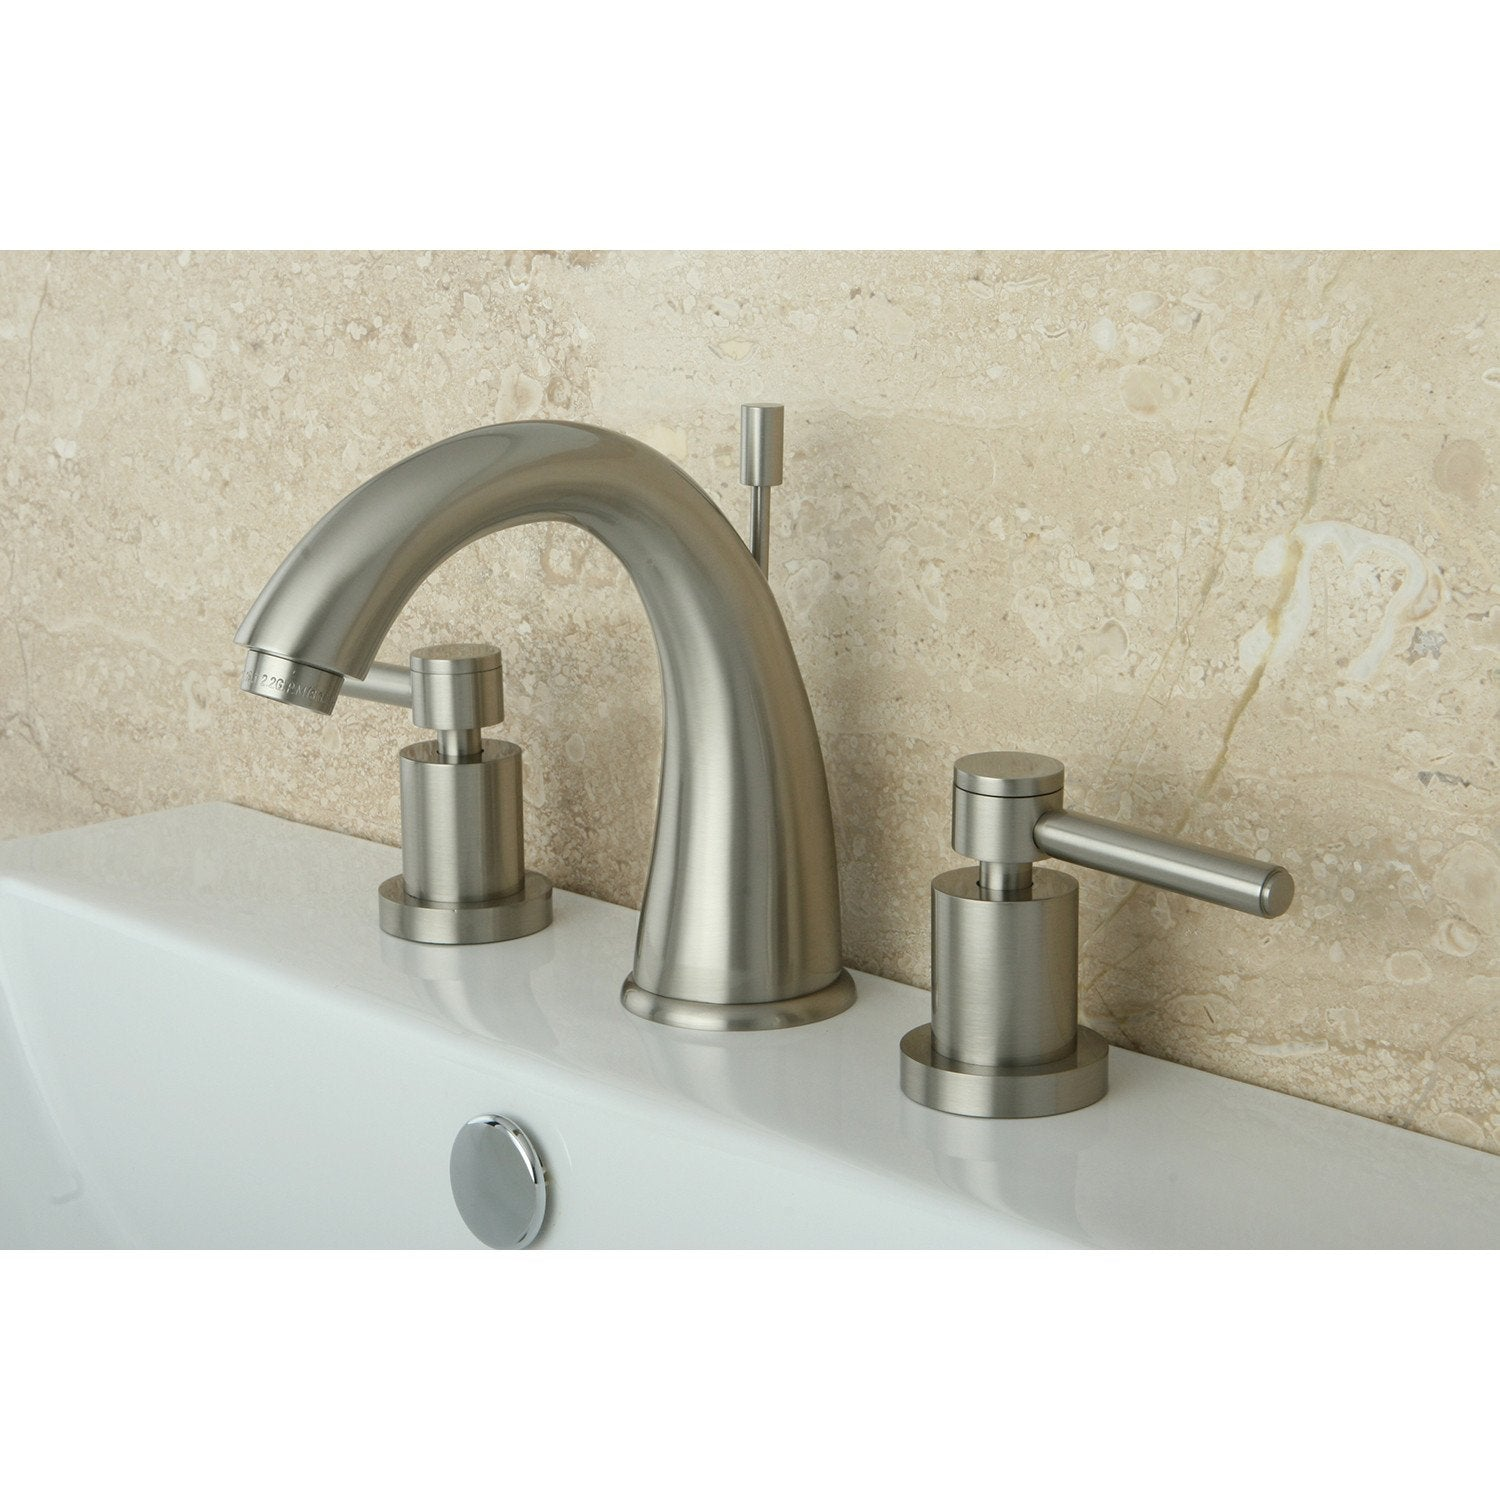 Satin Nickel Two Handle Widespread Bathroom Faucet w/ Brass Pop-Up KS2968DL